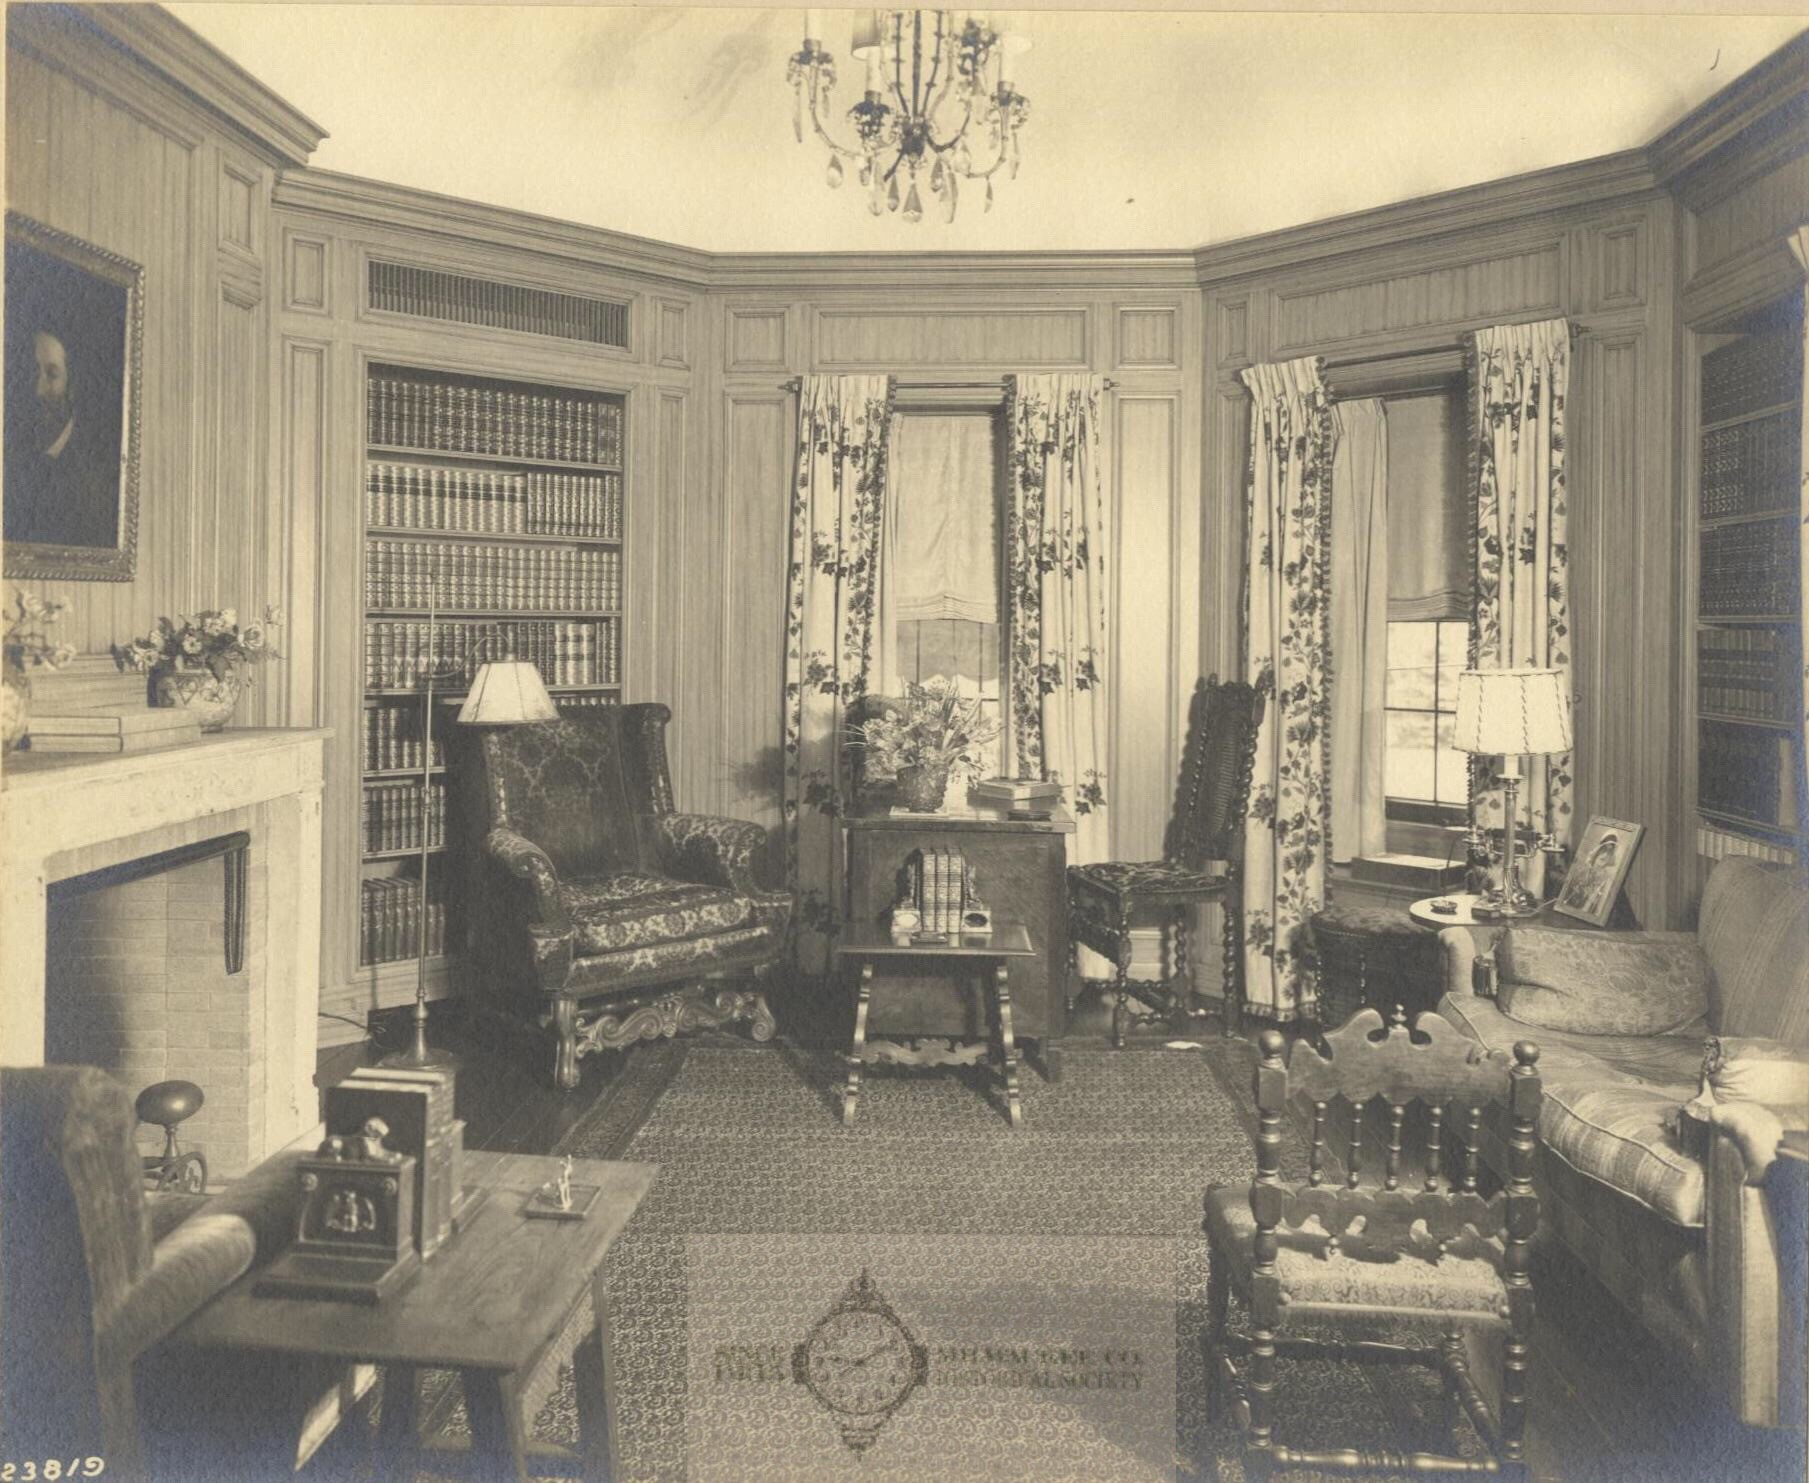 Albright Mansion Interior. Photo from the Milwaukee County Historical Society. All Rights Reserved.